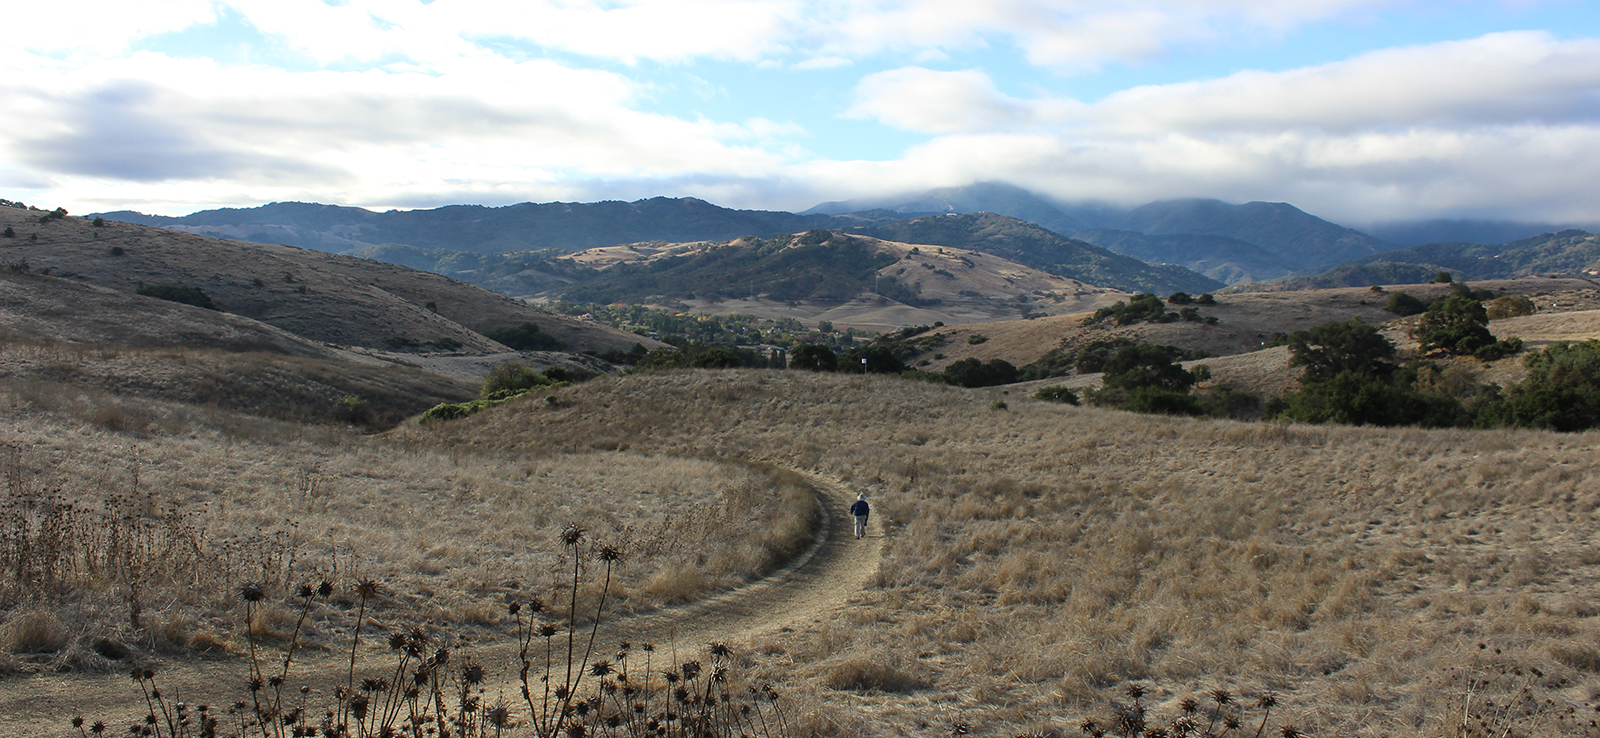 A hiker on a trail in Santa Teresa County Park